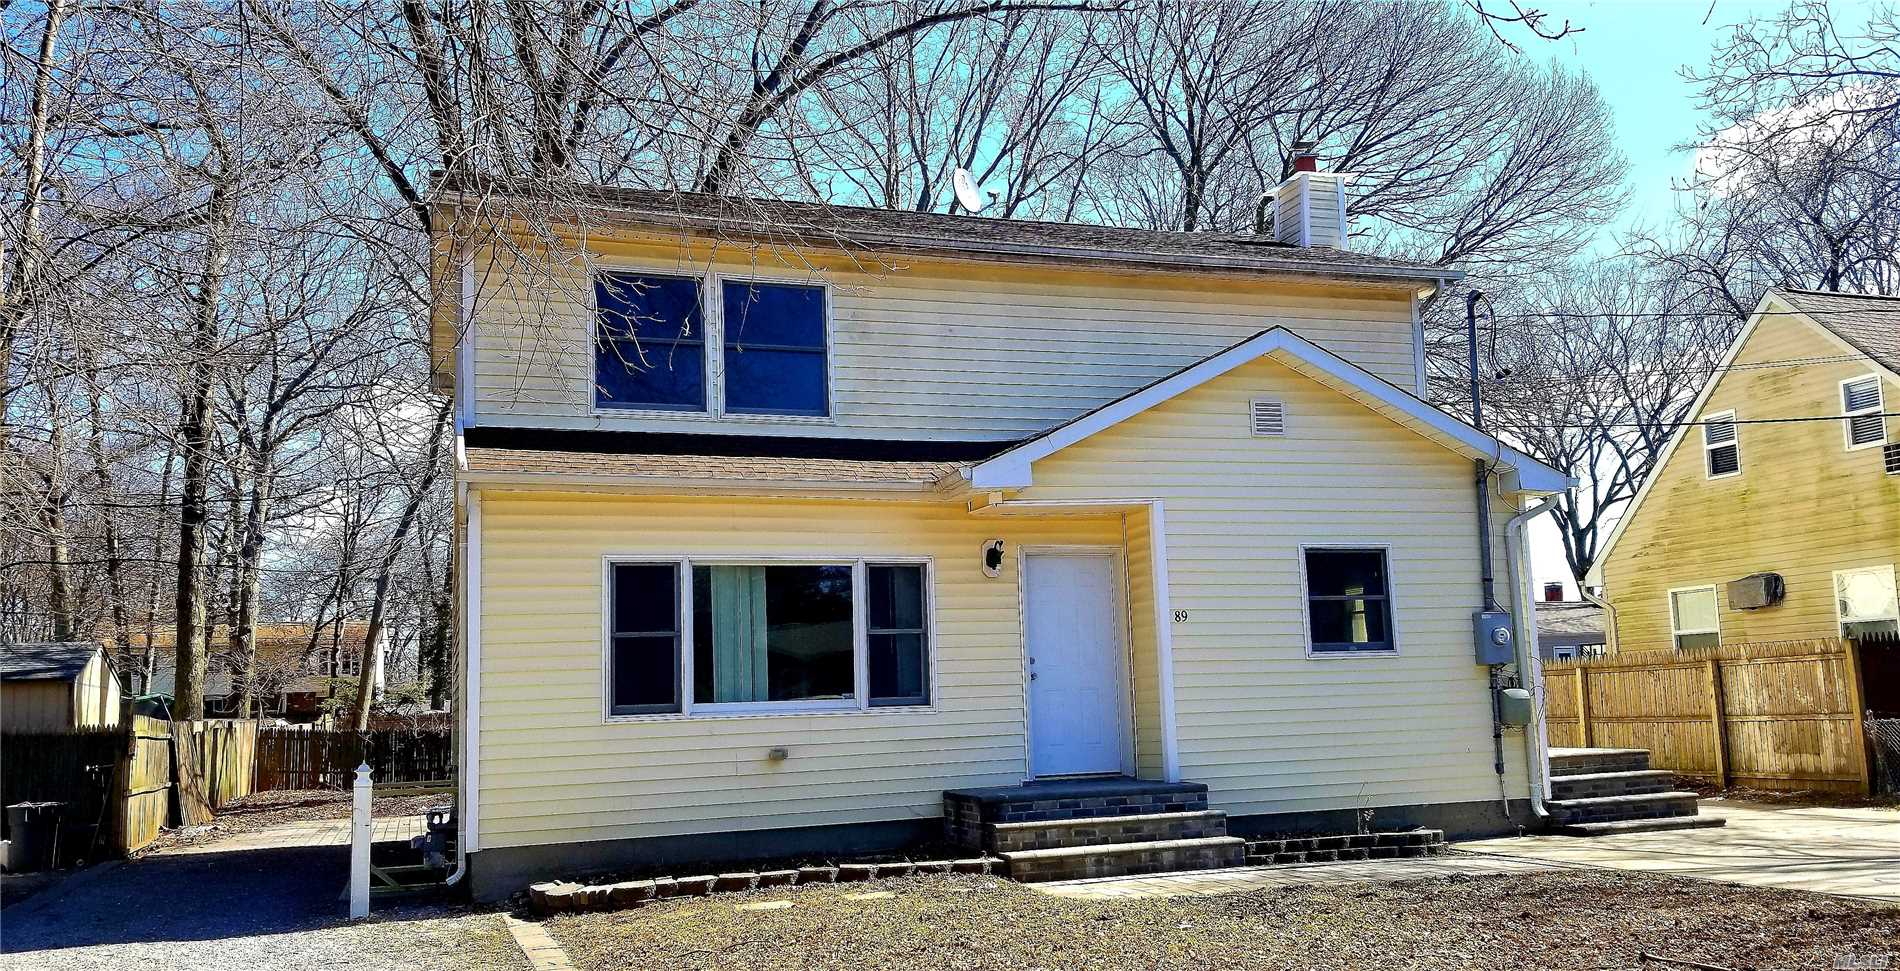 HHH school district, fully renovated inside out. Bright and big rooms. near lirr and long island express way. Middle of the block, nice and quite. And Detached Garage